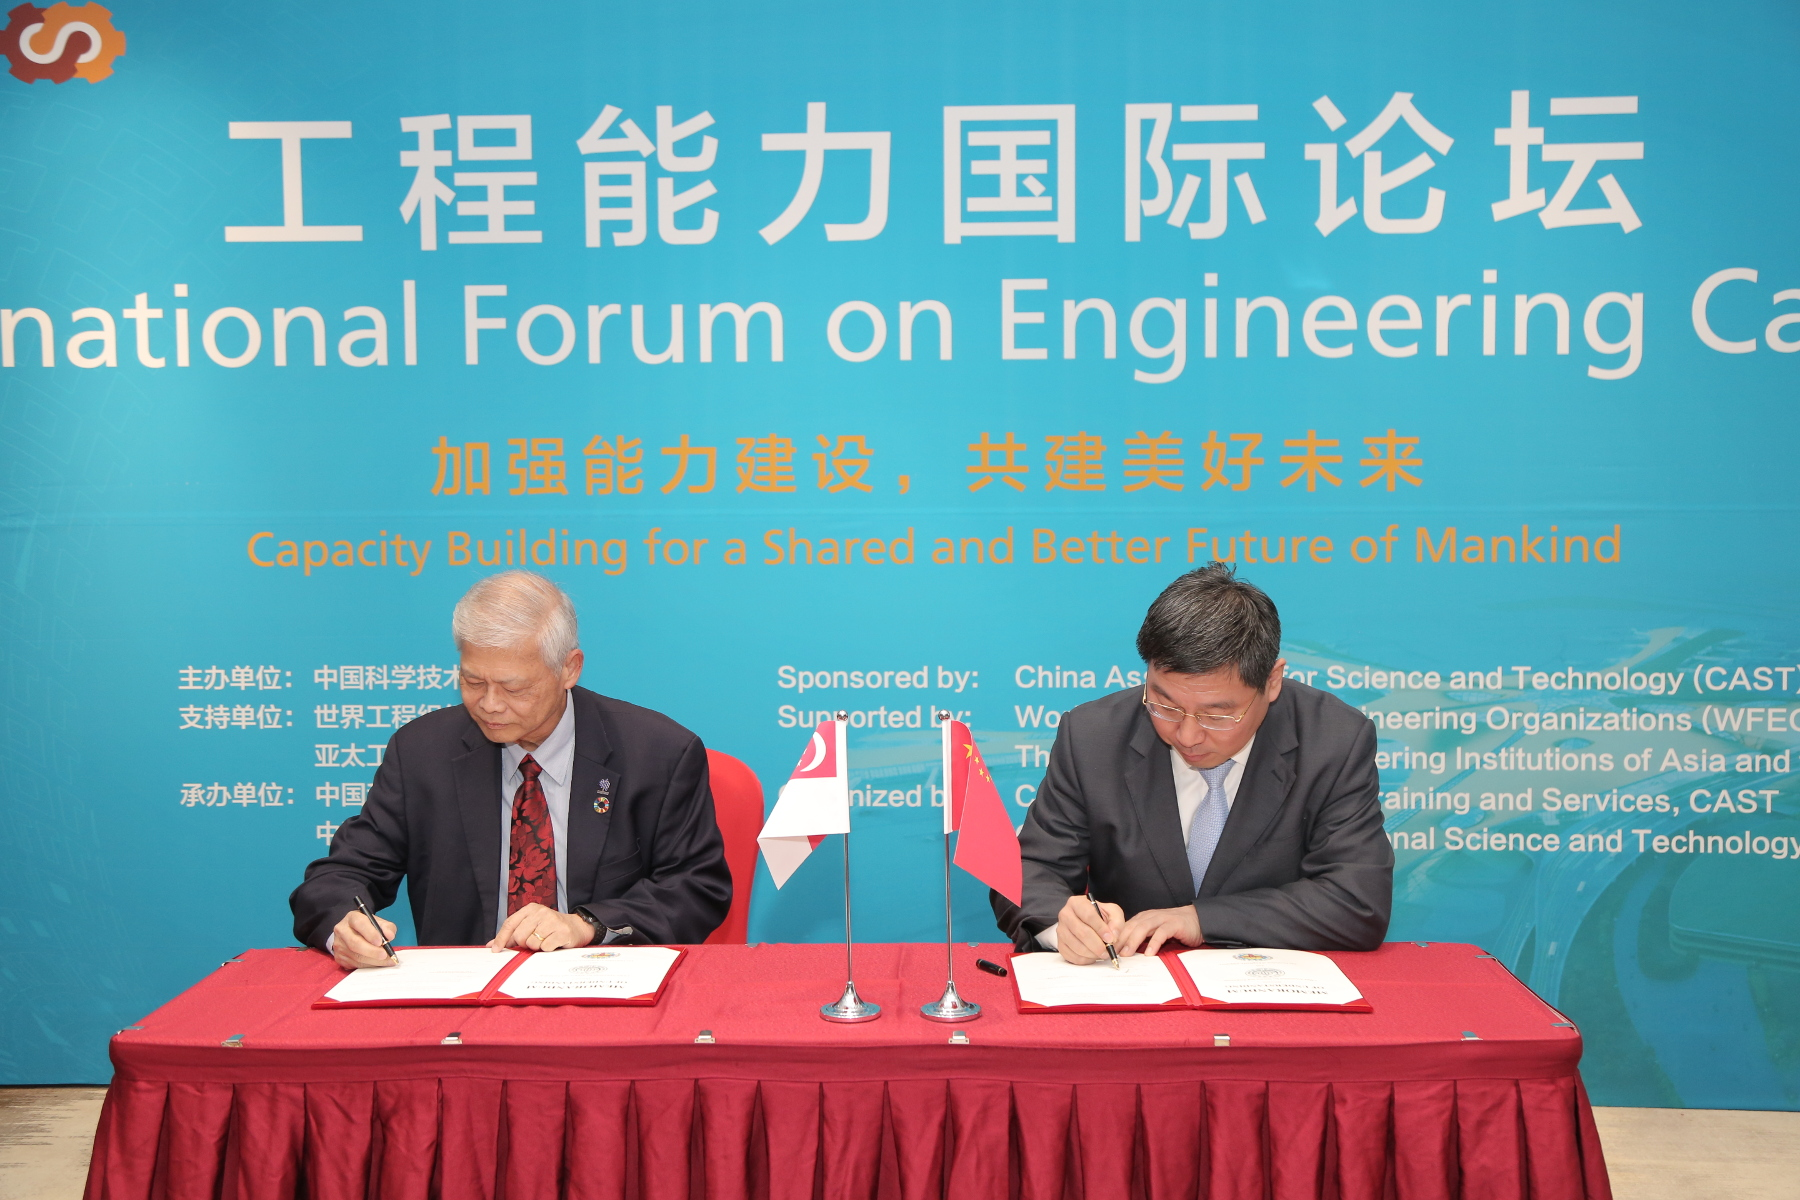 MOU between Institution of Engineers, Singapore and CAST